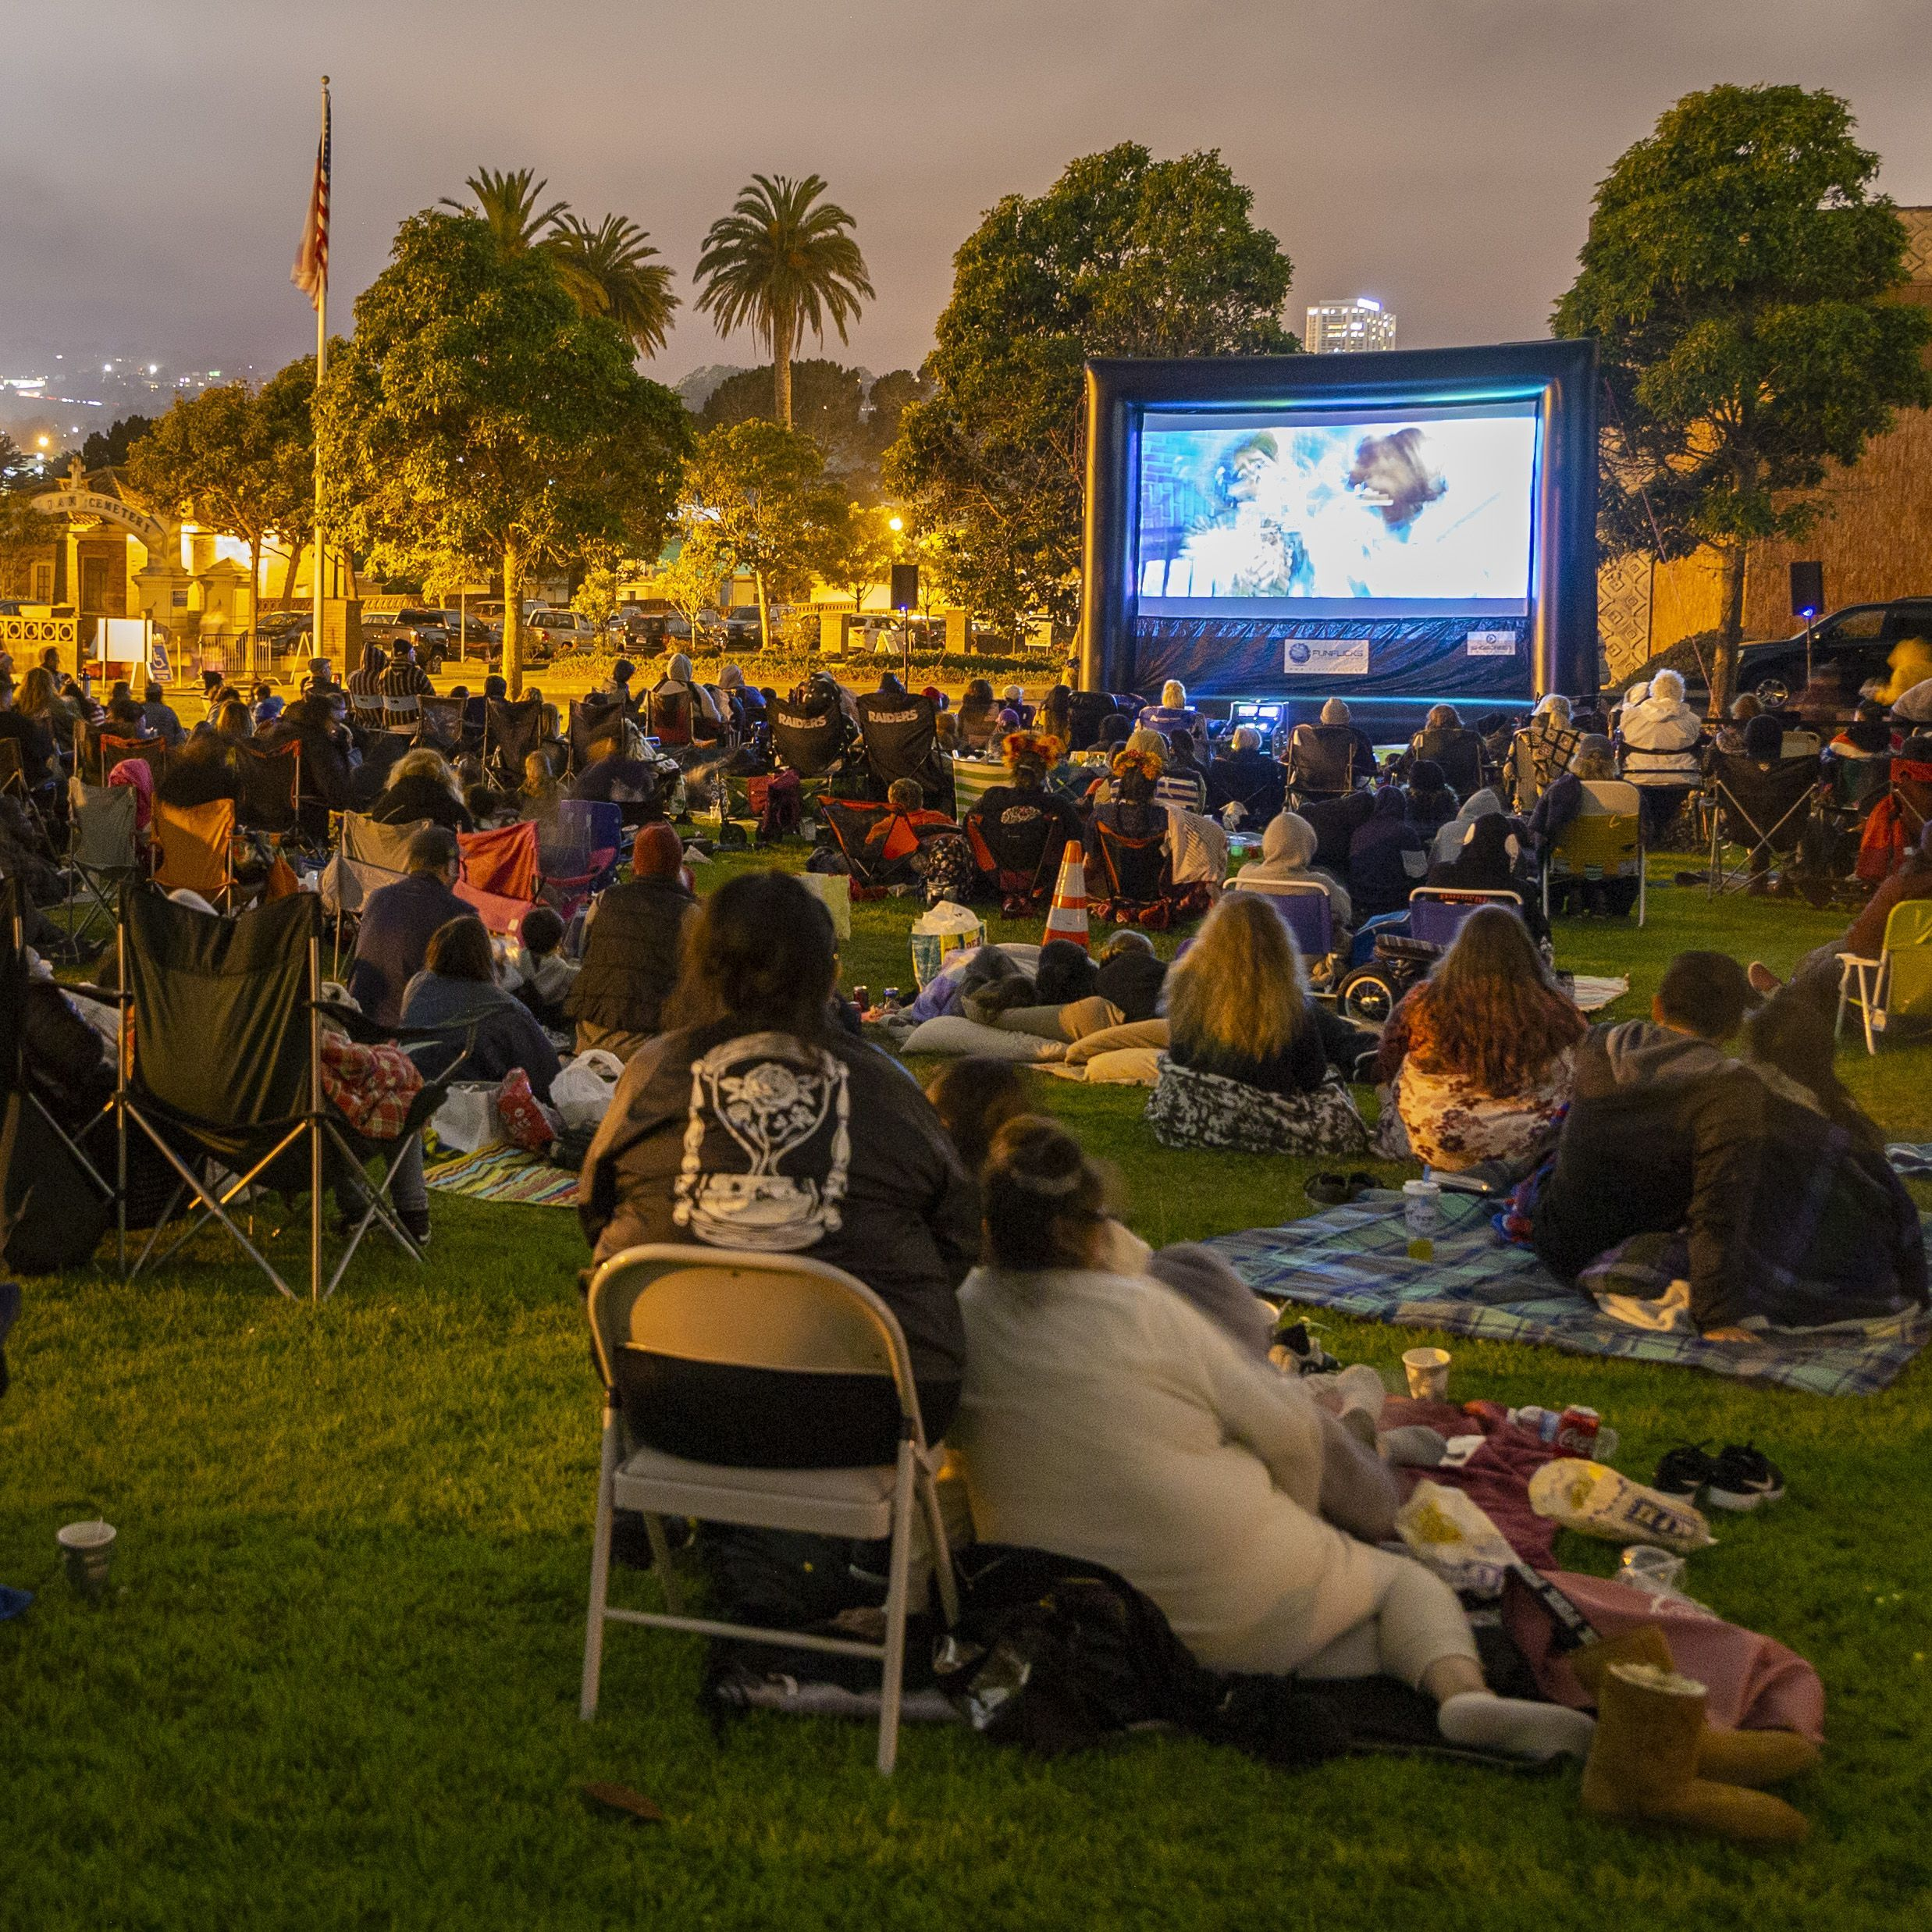 Parks and Recreation month ideas includes hosting an outdoor movie special event